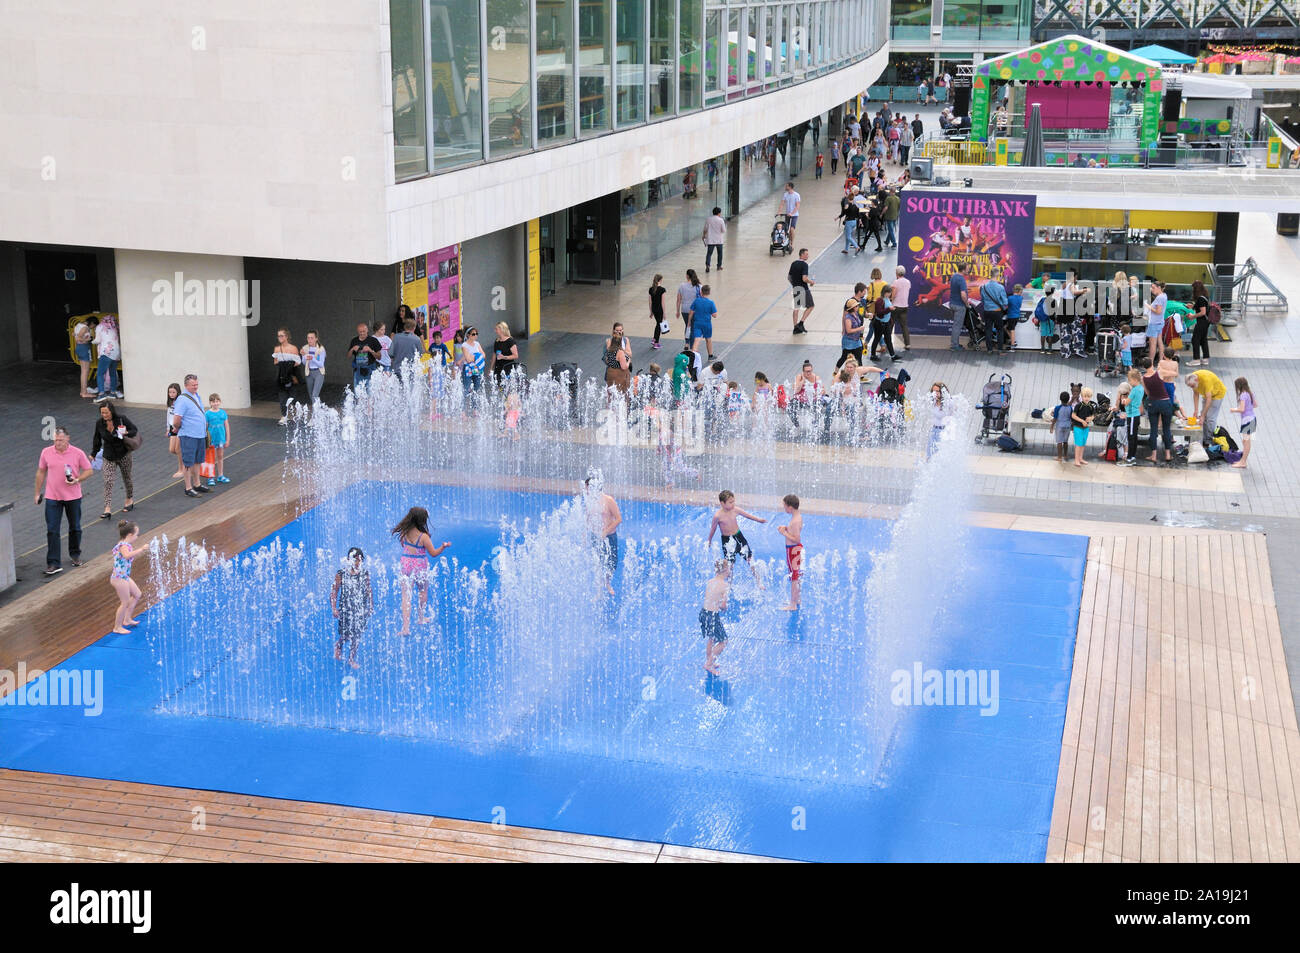 Children having fun playing in the water jet fountains in the Appearing Rooms installation by Danish artist Jeppe Hein, Southbank Centre, London, UK Stock Photo